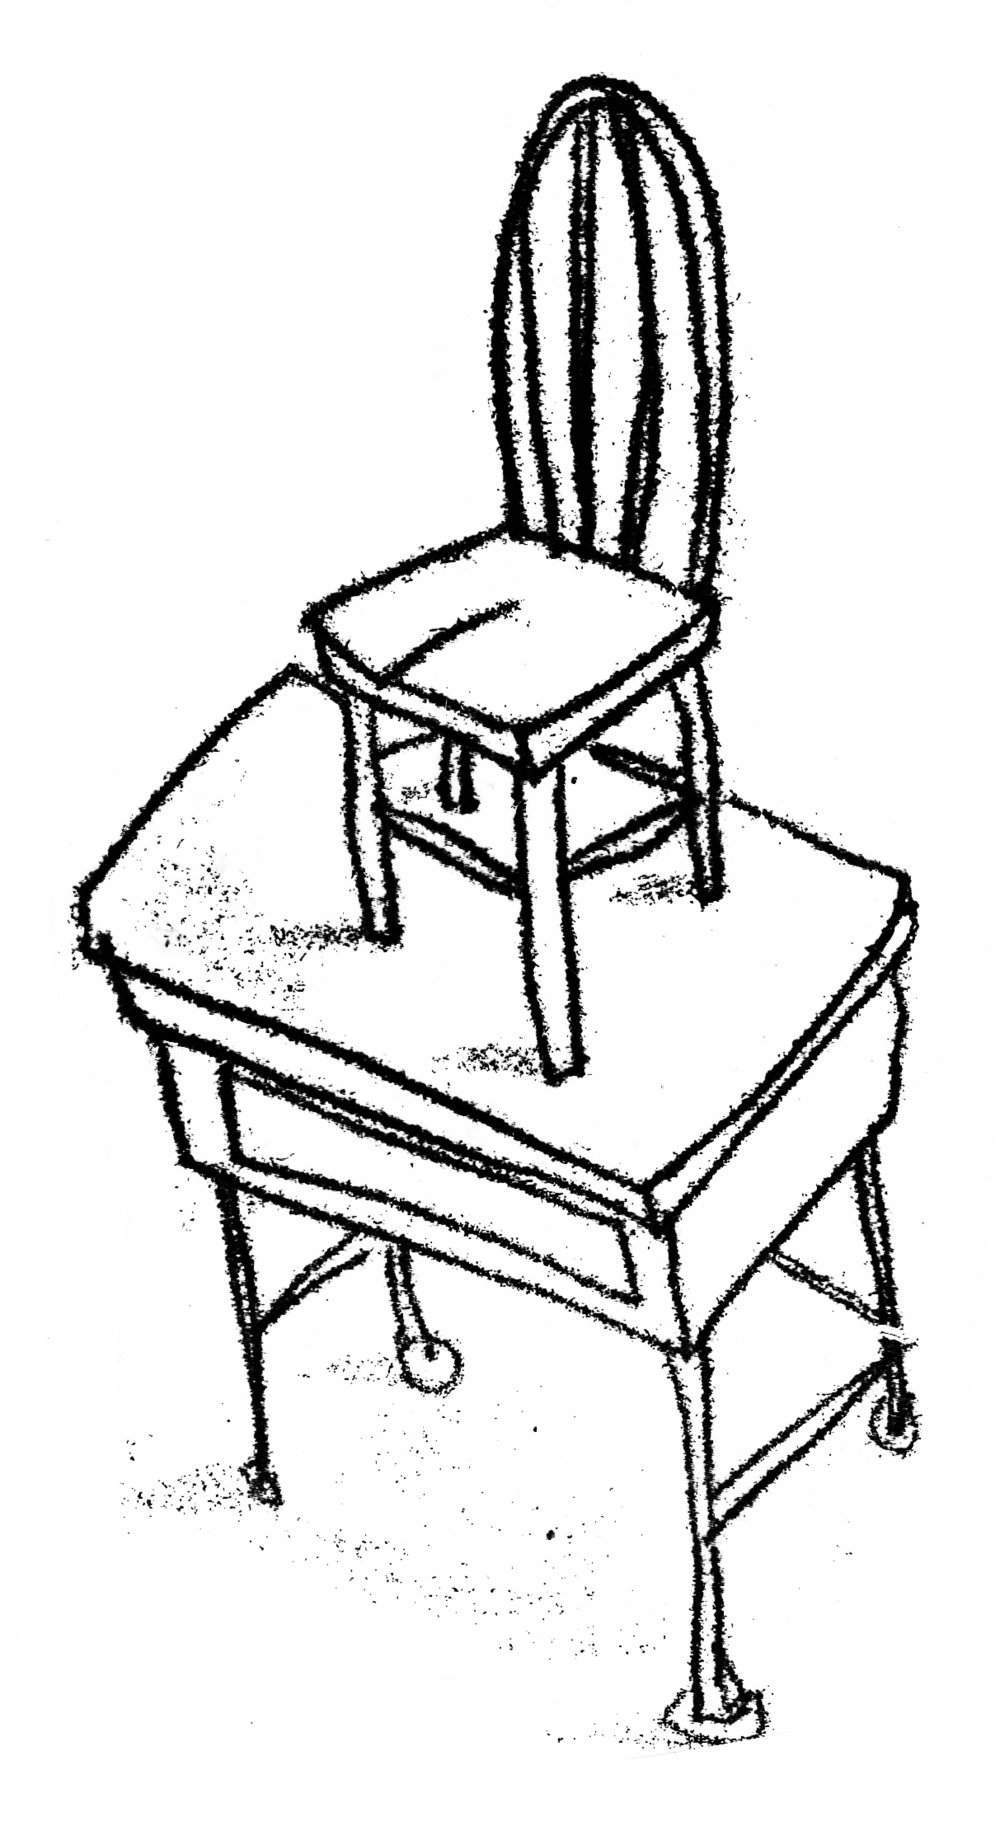 41_chair_desk.jpg